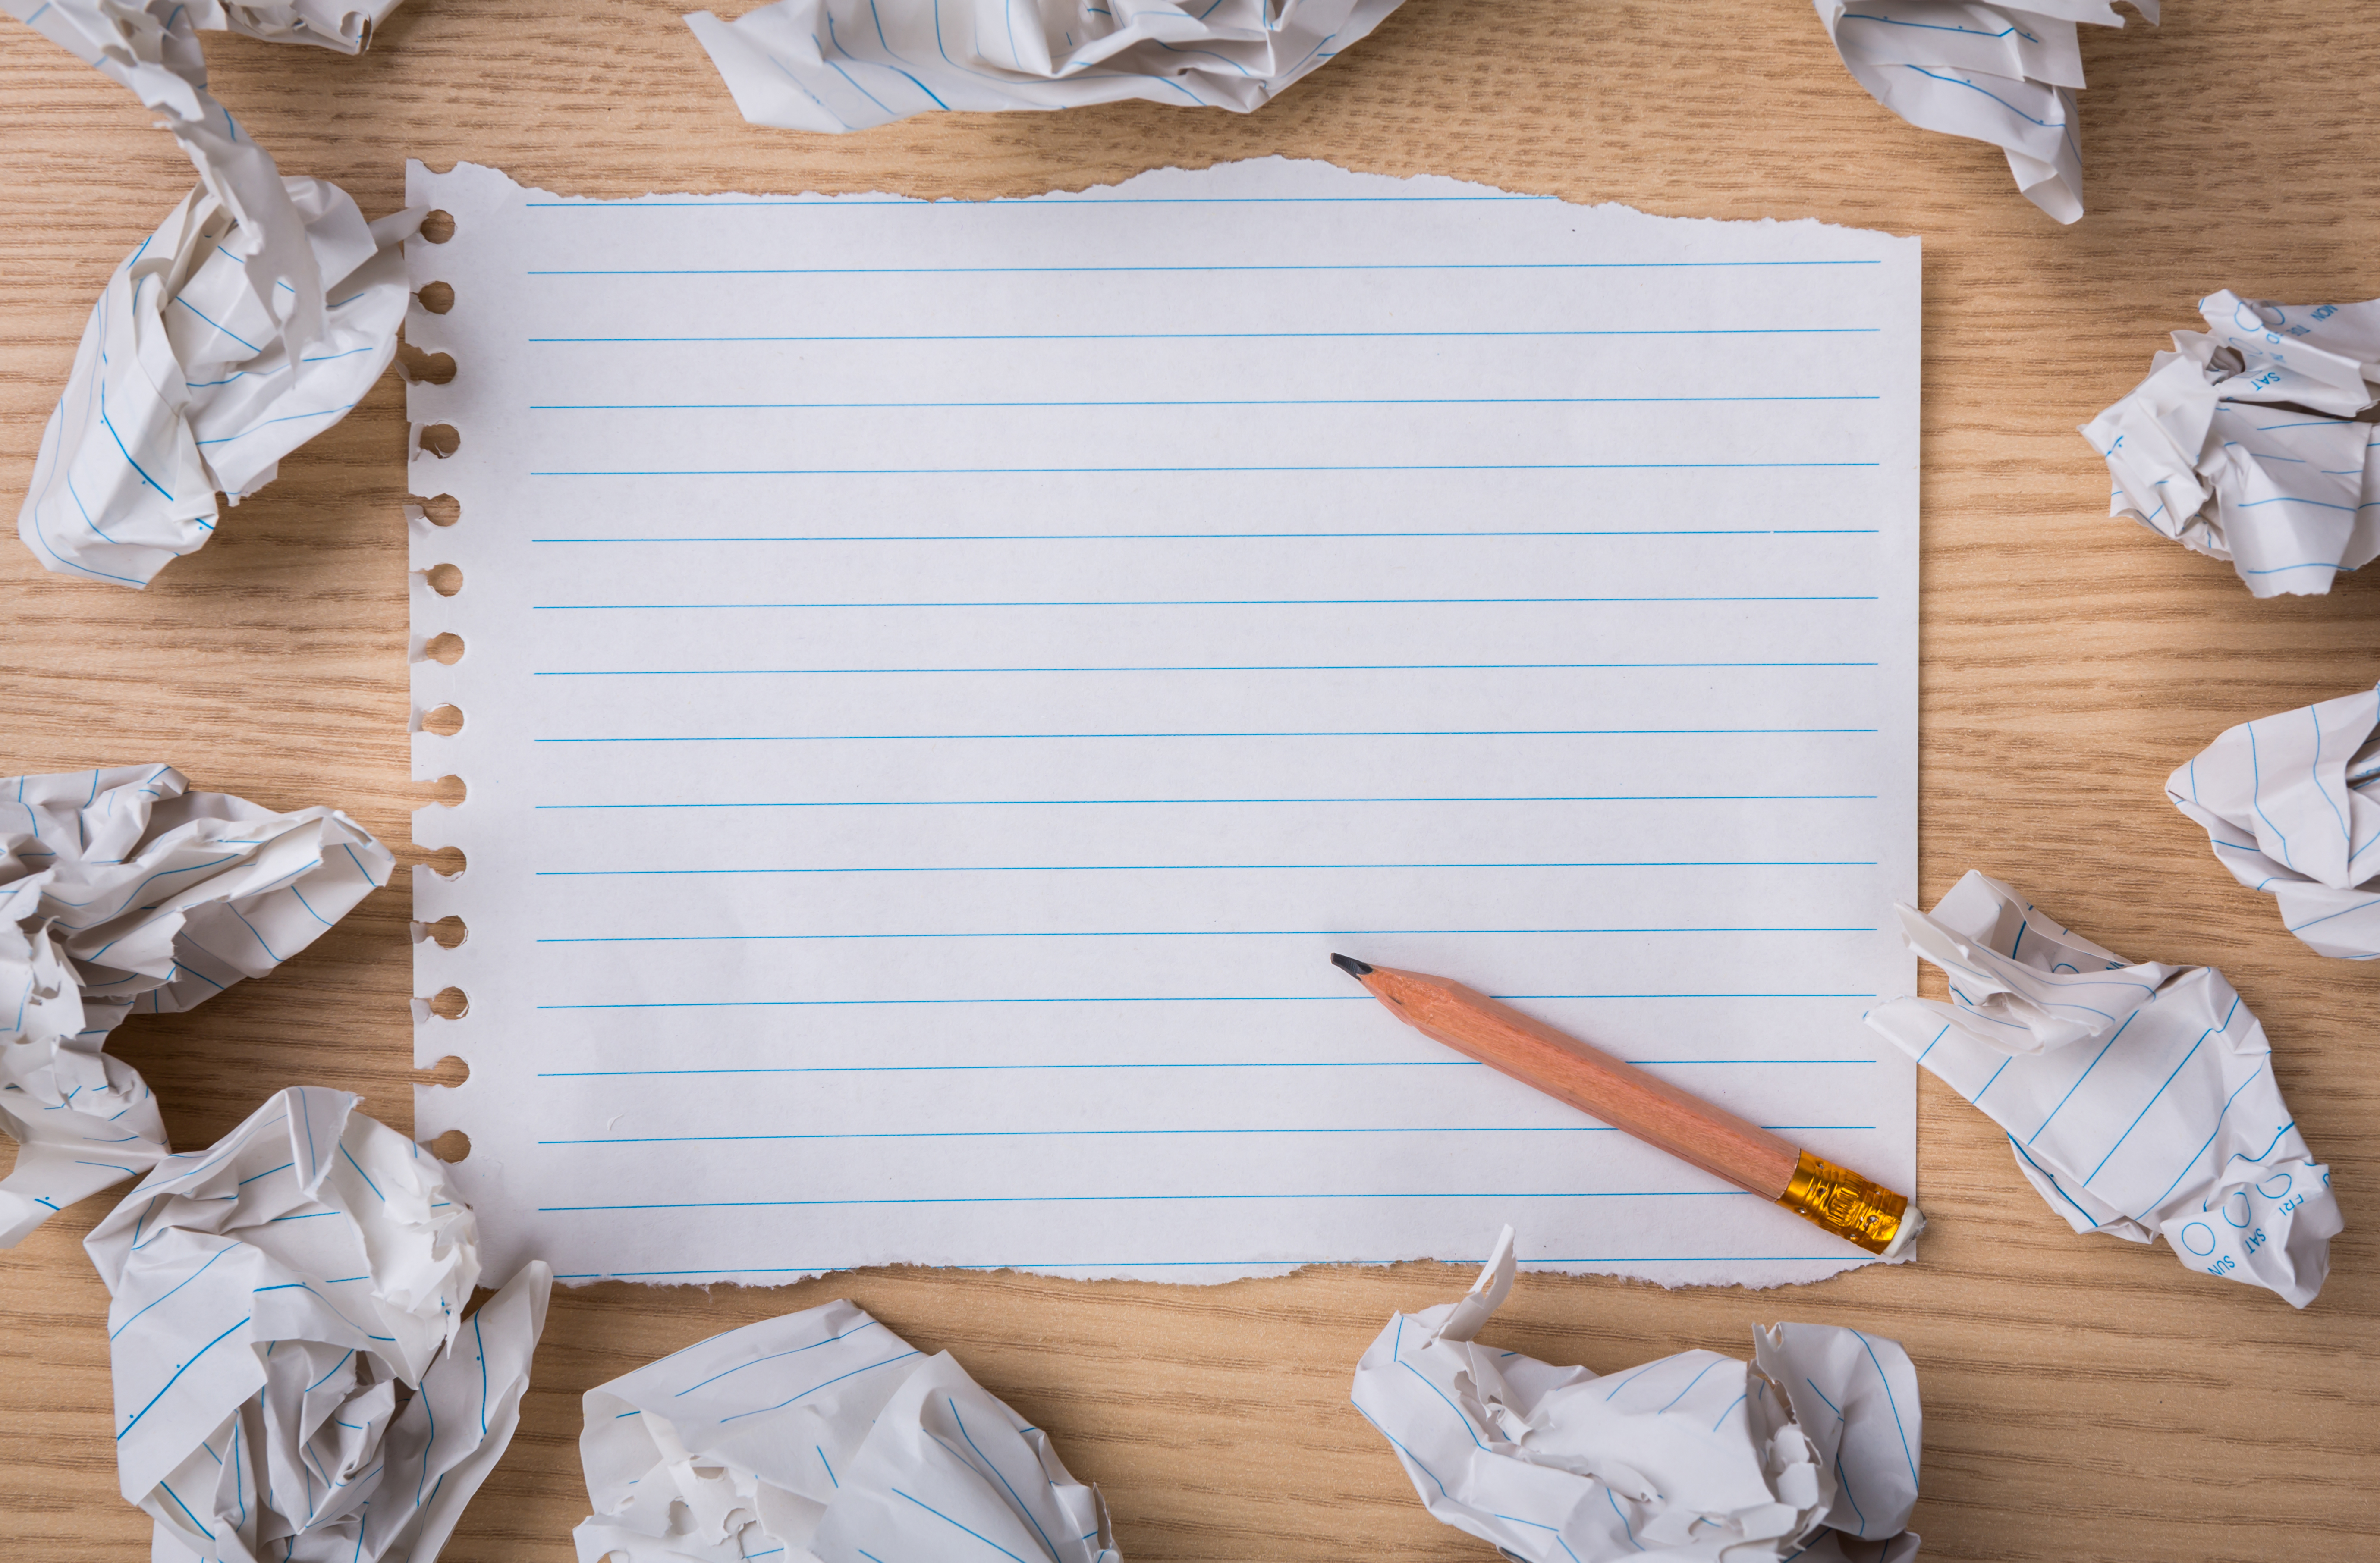 Some tips for writing a cover letter